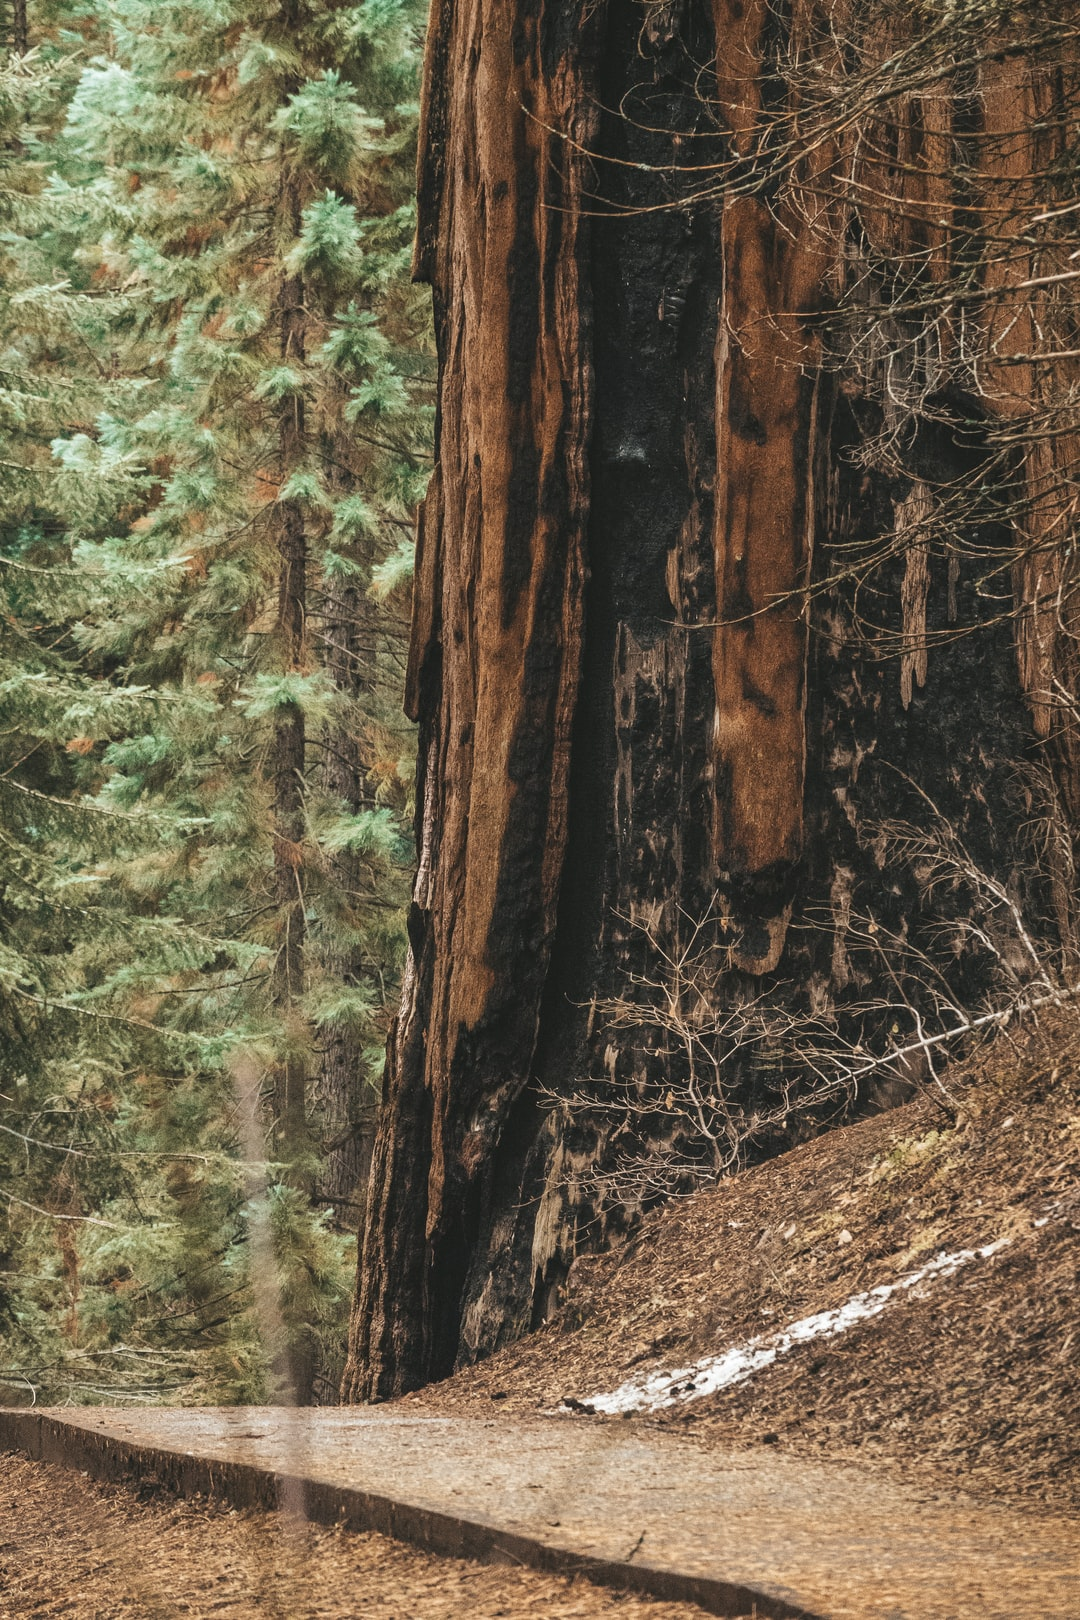 Sequoia Tree   Sequoia & Kings Canyon National Parks, Generals Highway, Three Rivers, California / Kalifornien, USA. 2019 / Winter.